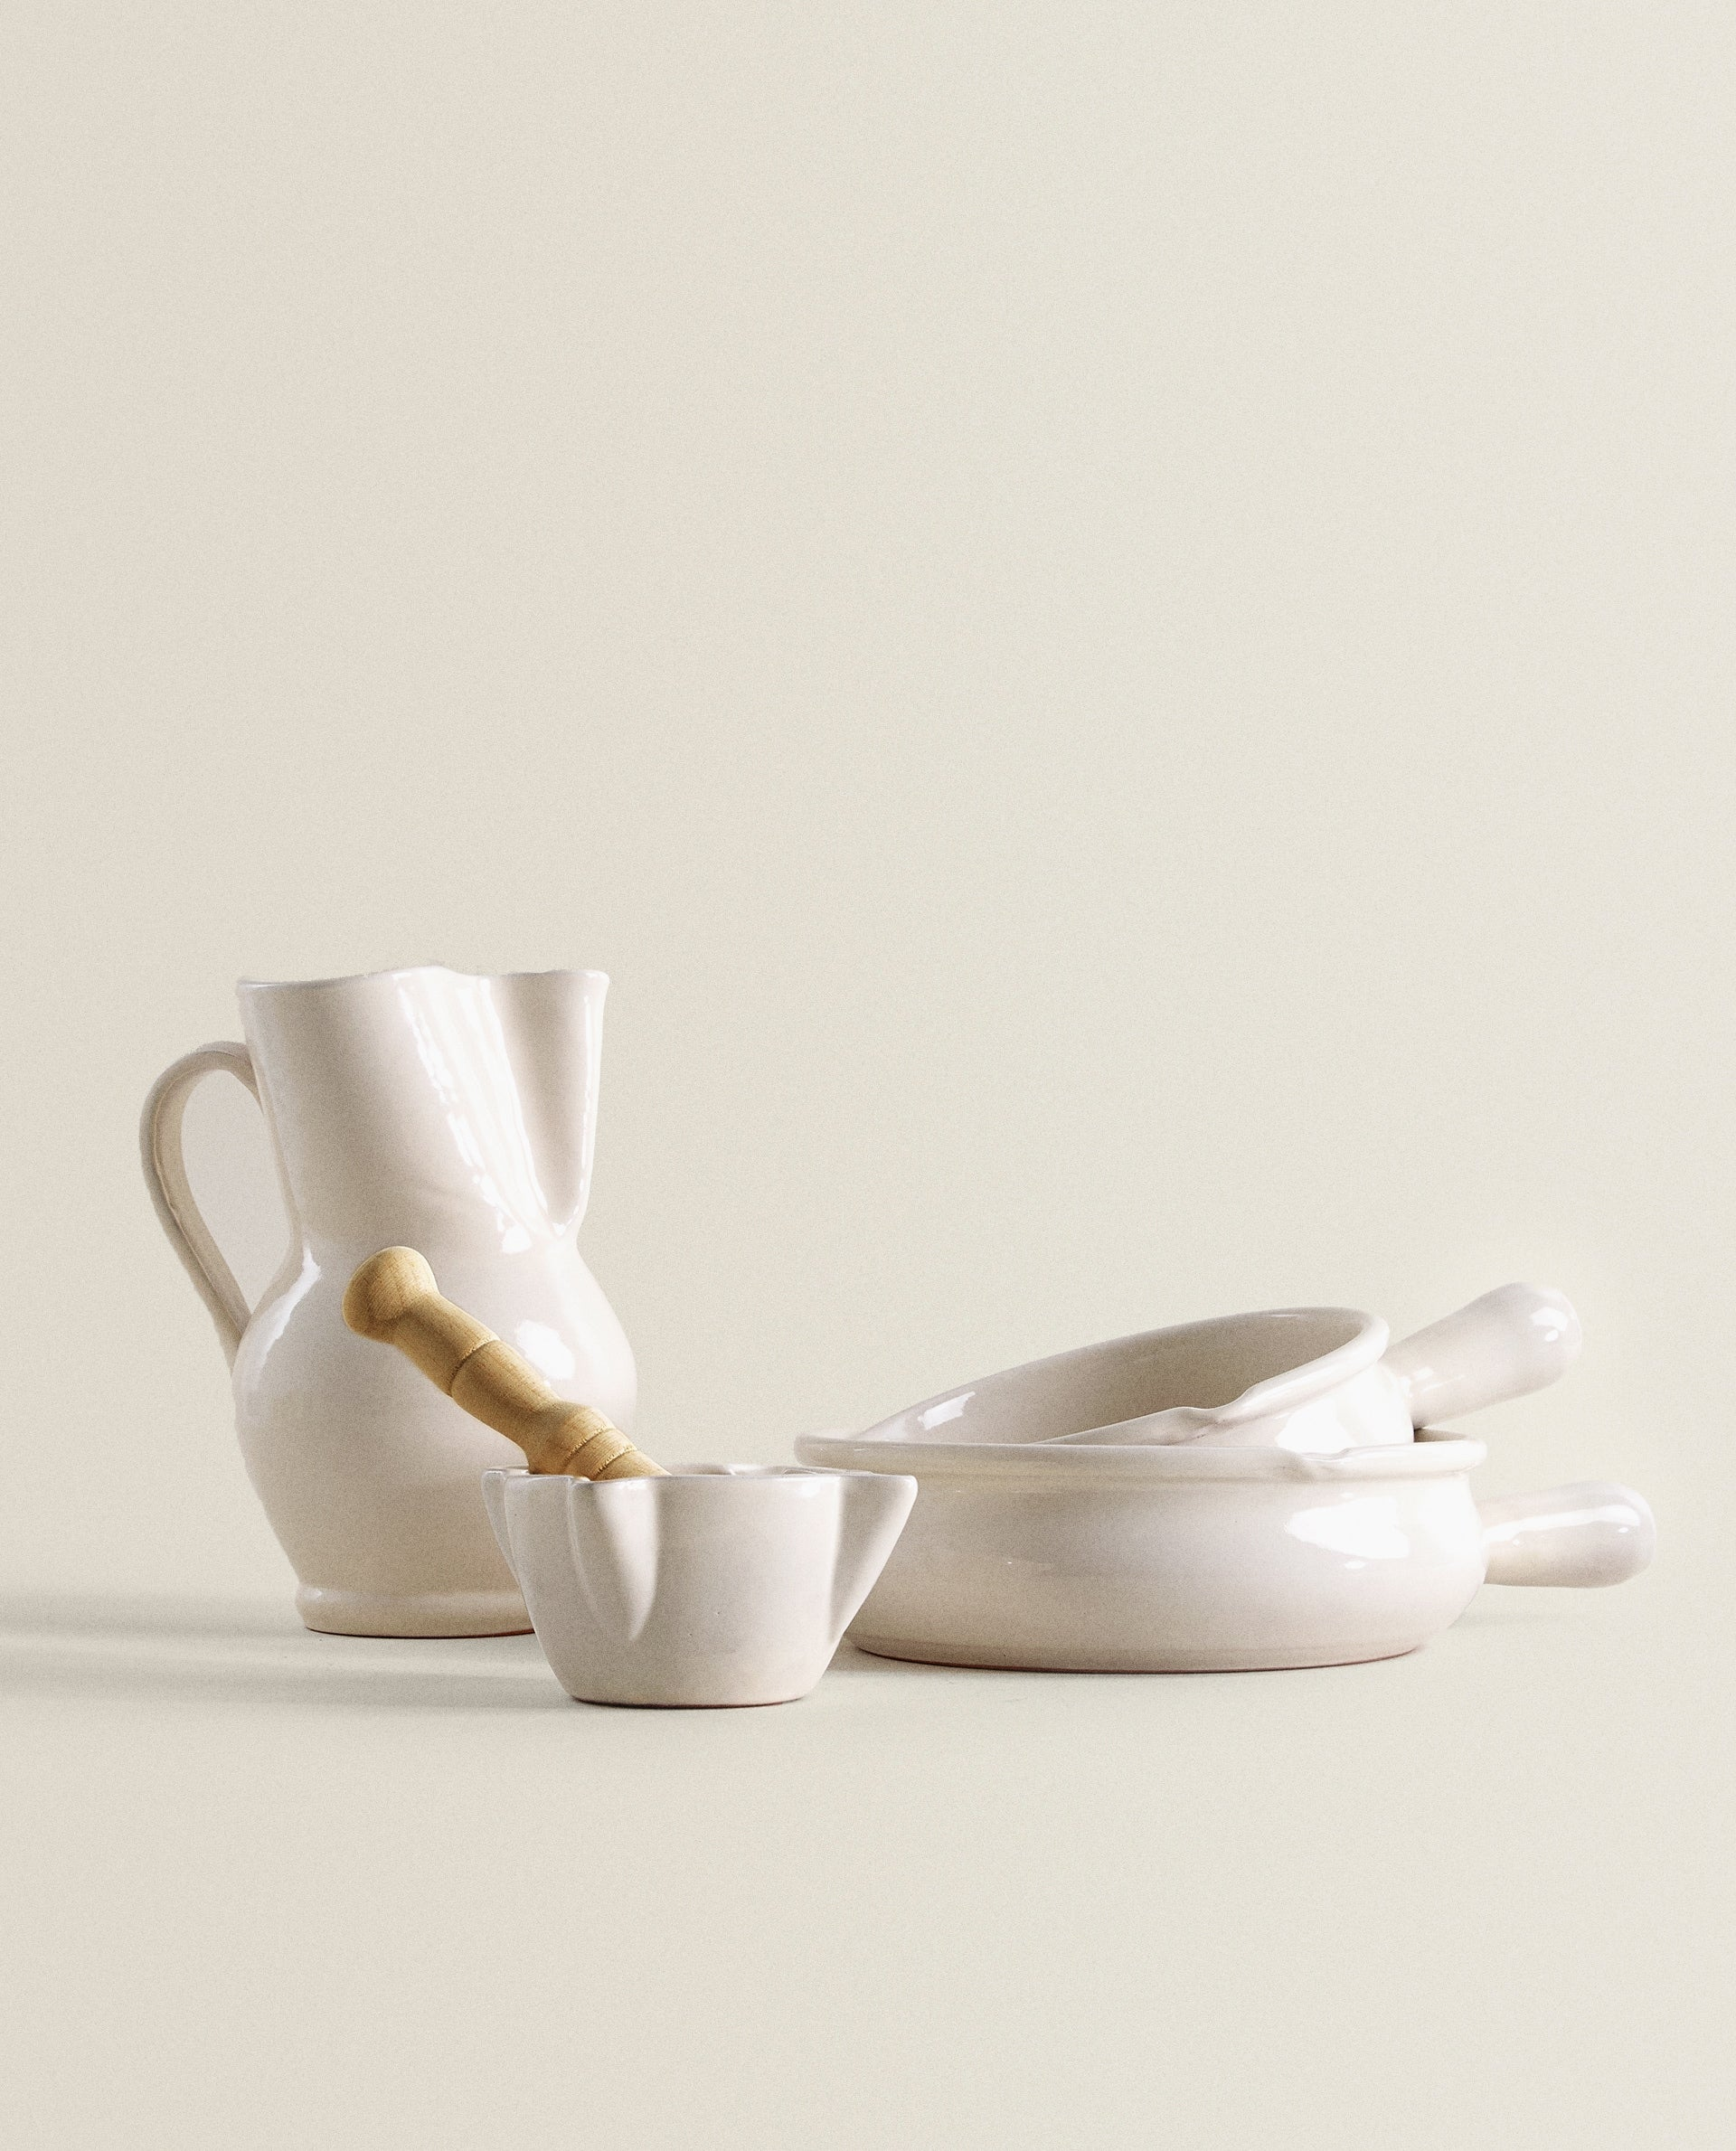 PITCHER, SERVING DISH AND PESTLE AND MORTAR SET